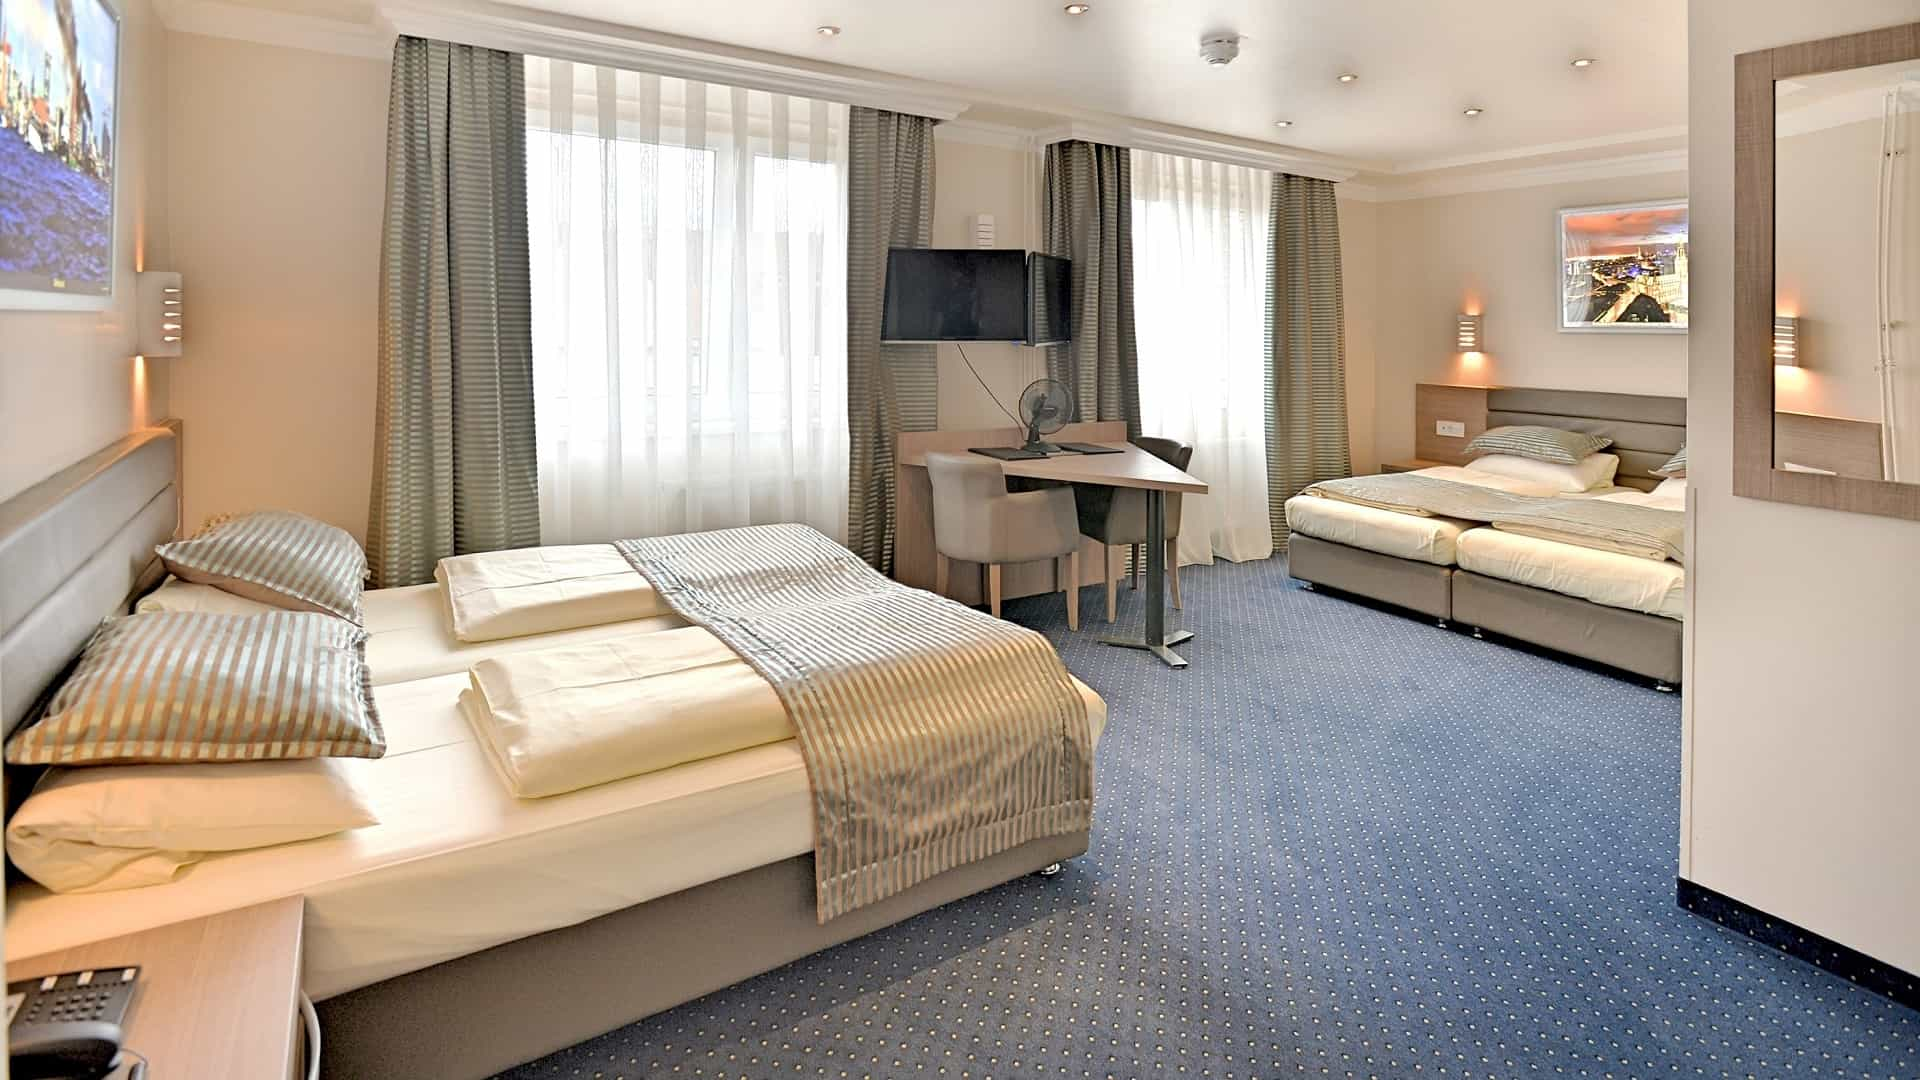 Quadruple room ideal for families with children at the St.Joseph Hotel near Reeperbahn in Hamburg